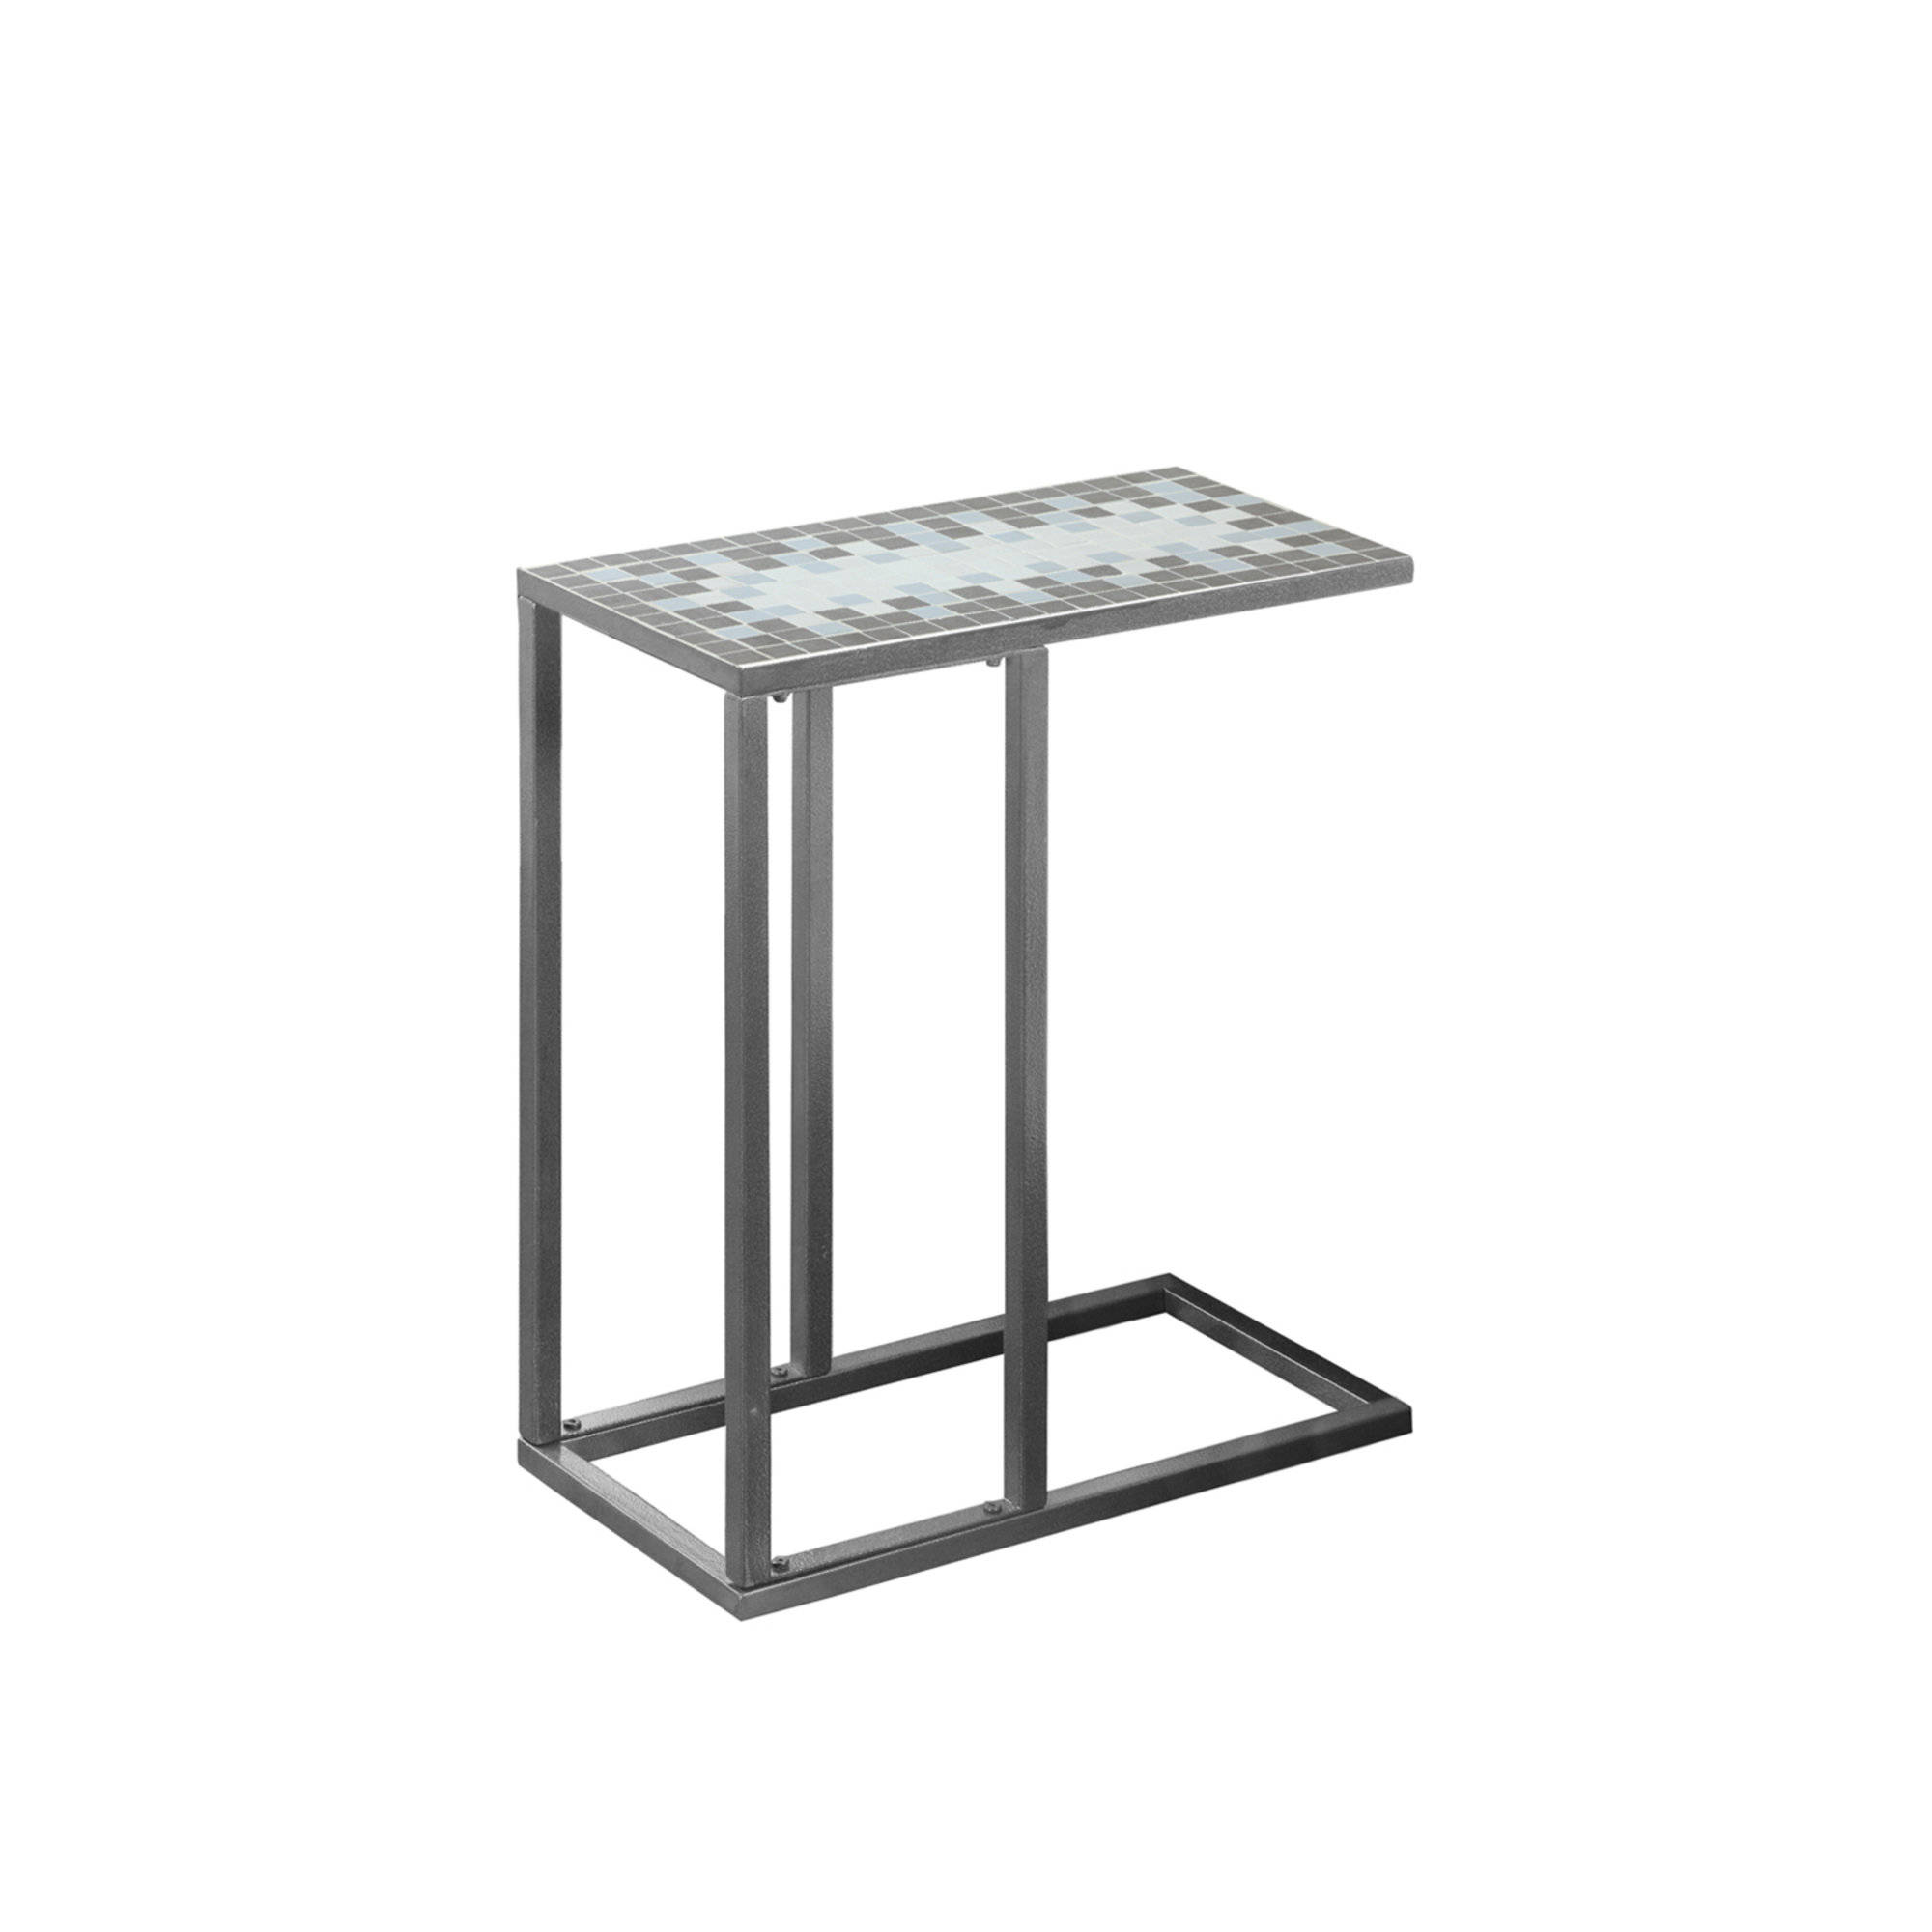 monarch specialties grey blue metal accent snack table the classy home mnc french farmhouse homepop antique brass and glass coffee clear acrylic light wood end tables oblong cover